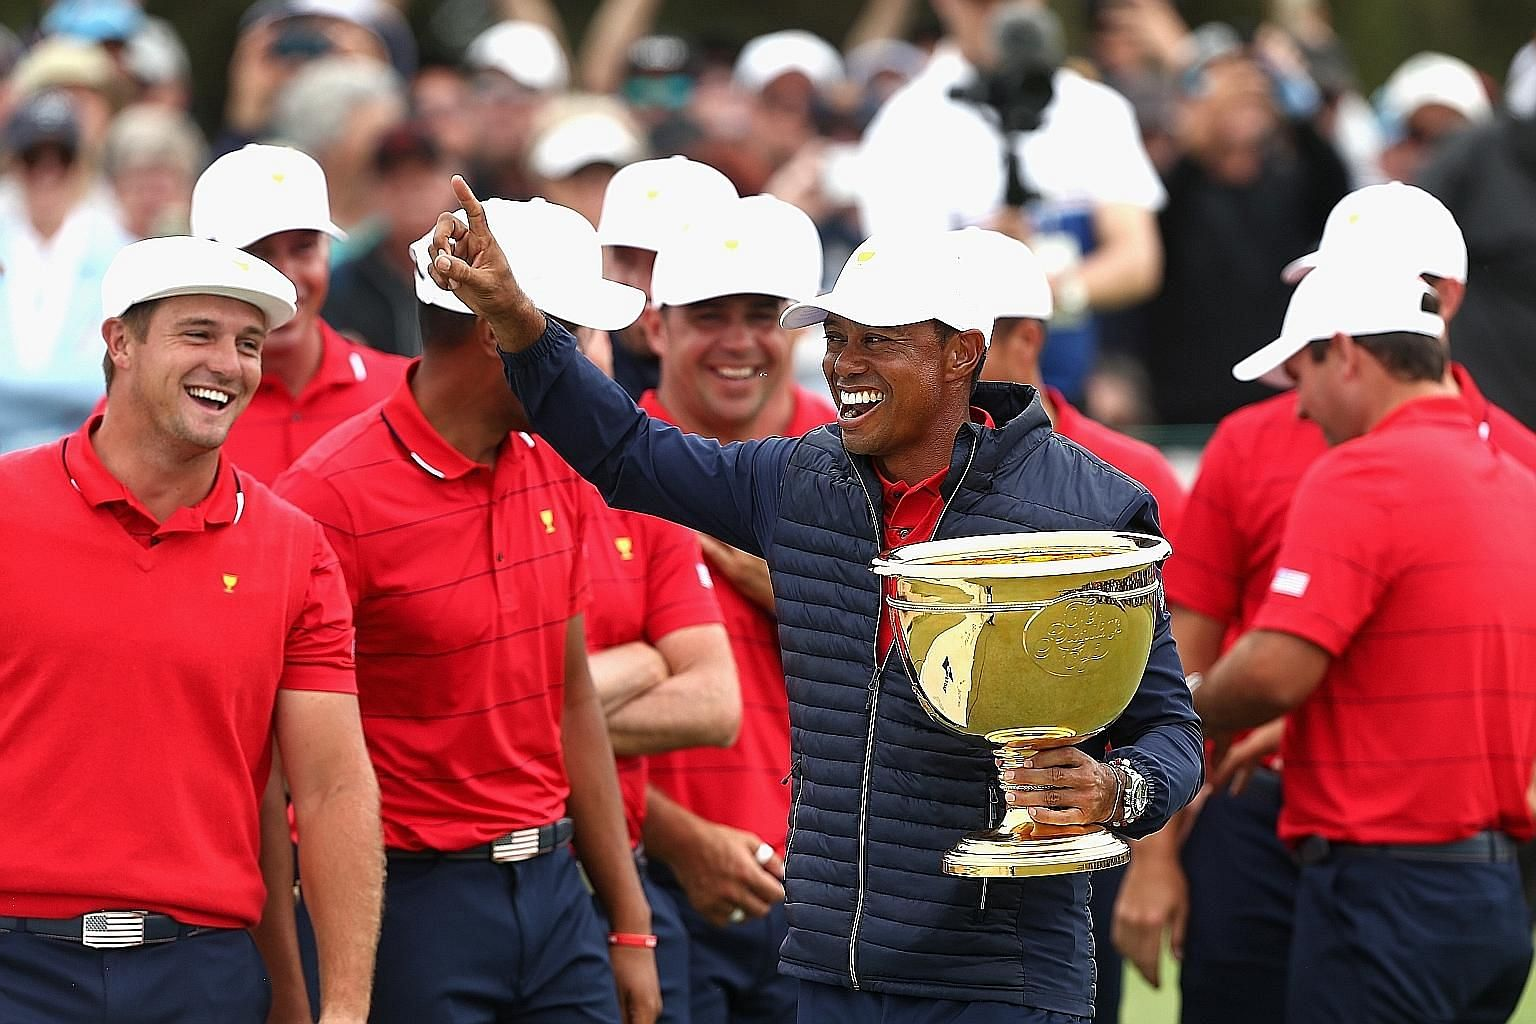 """Tiger Woods celebrating the US team's Presidents Cup victory with his teammates yesterday. The playing captain said he """"trusted all my 11 guys implicitly from the very get go""""."""